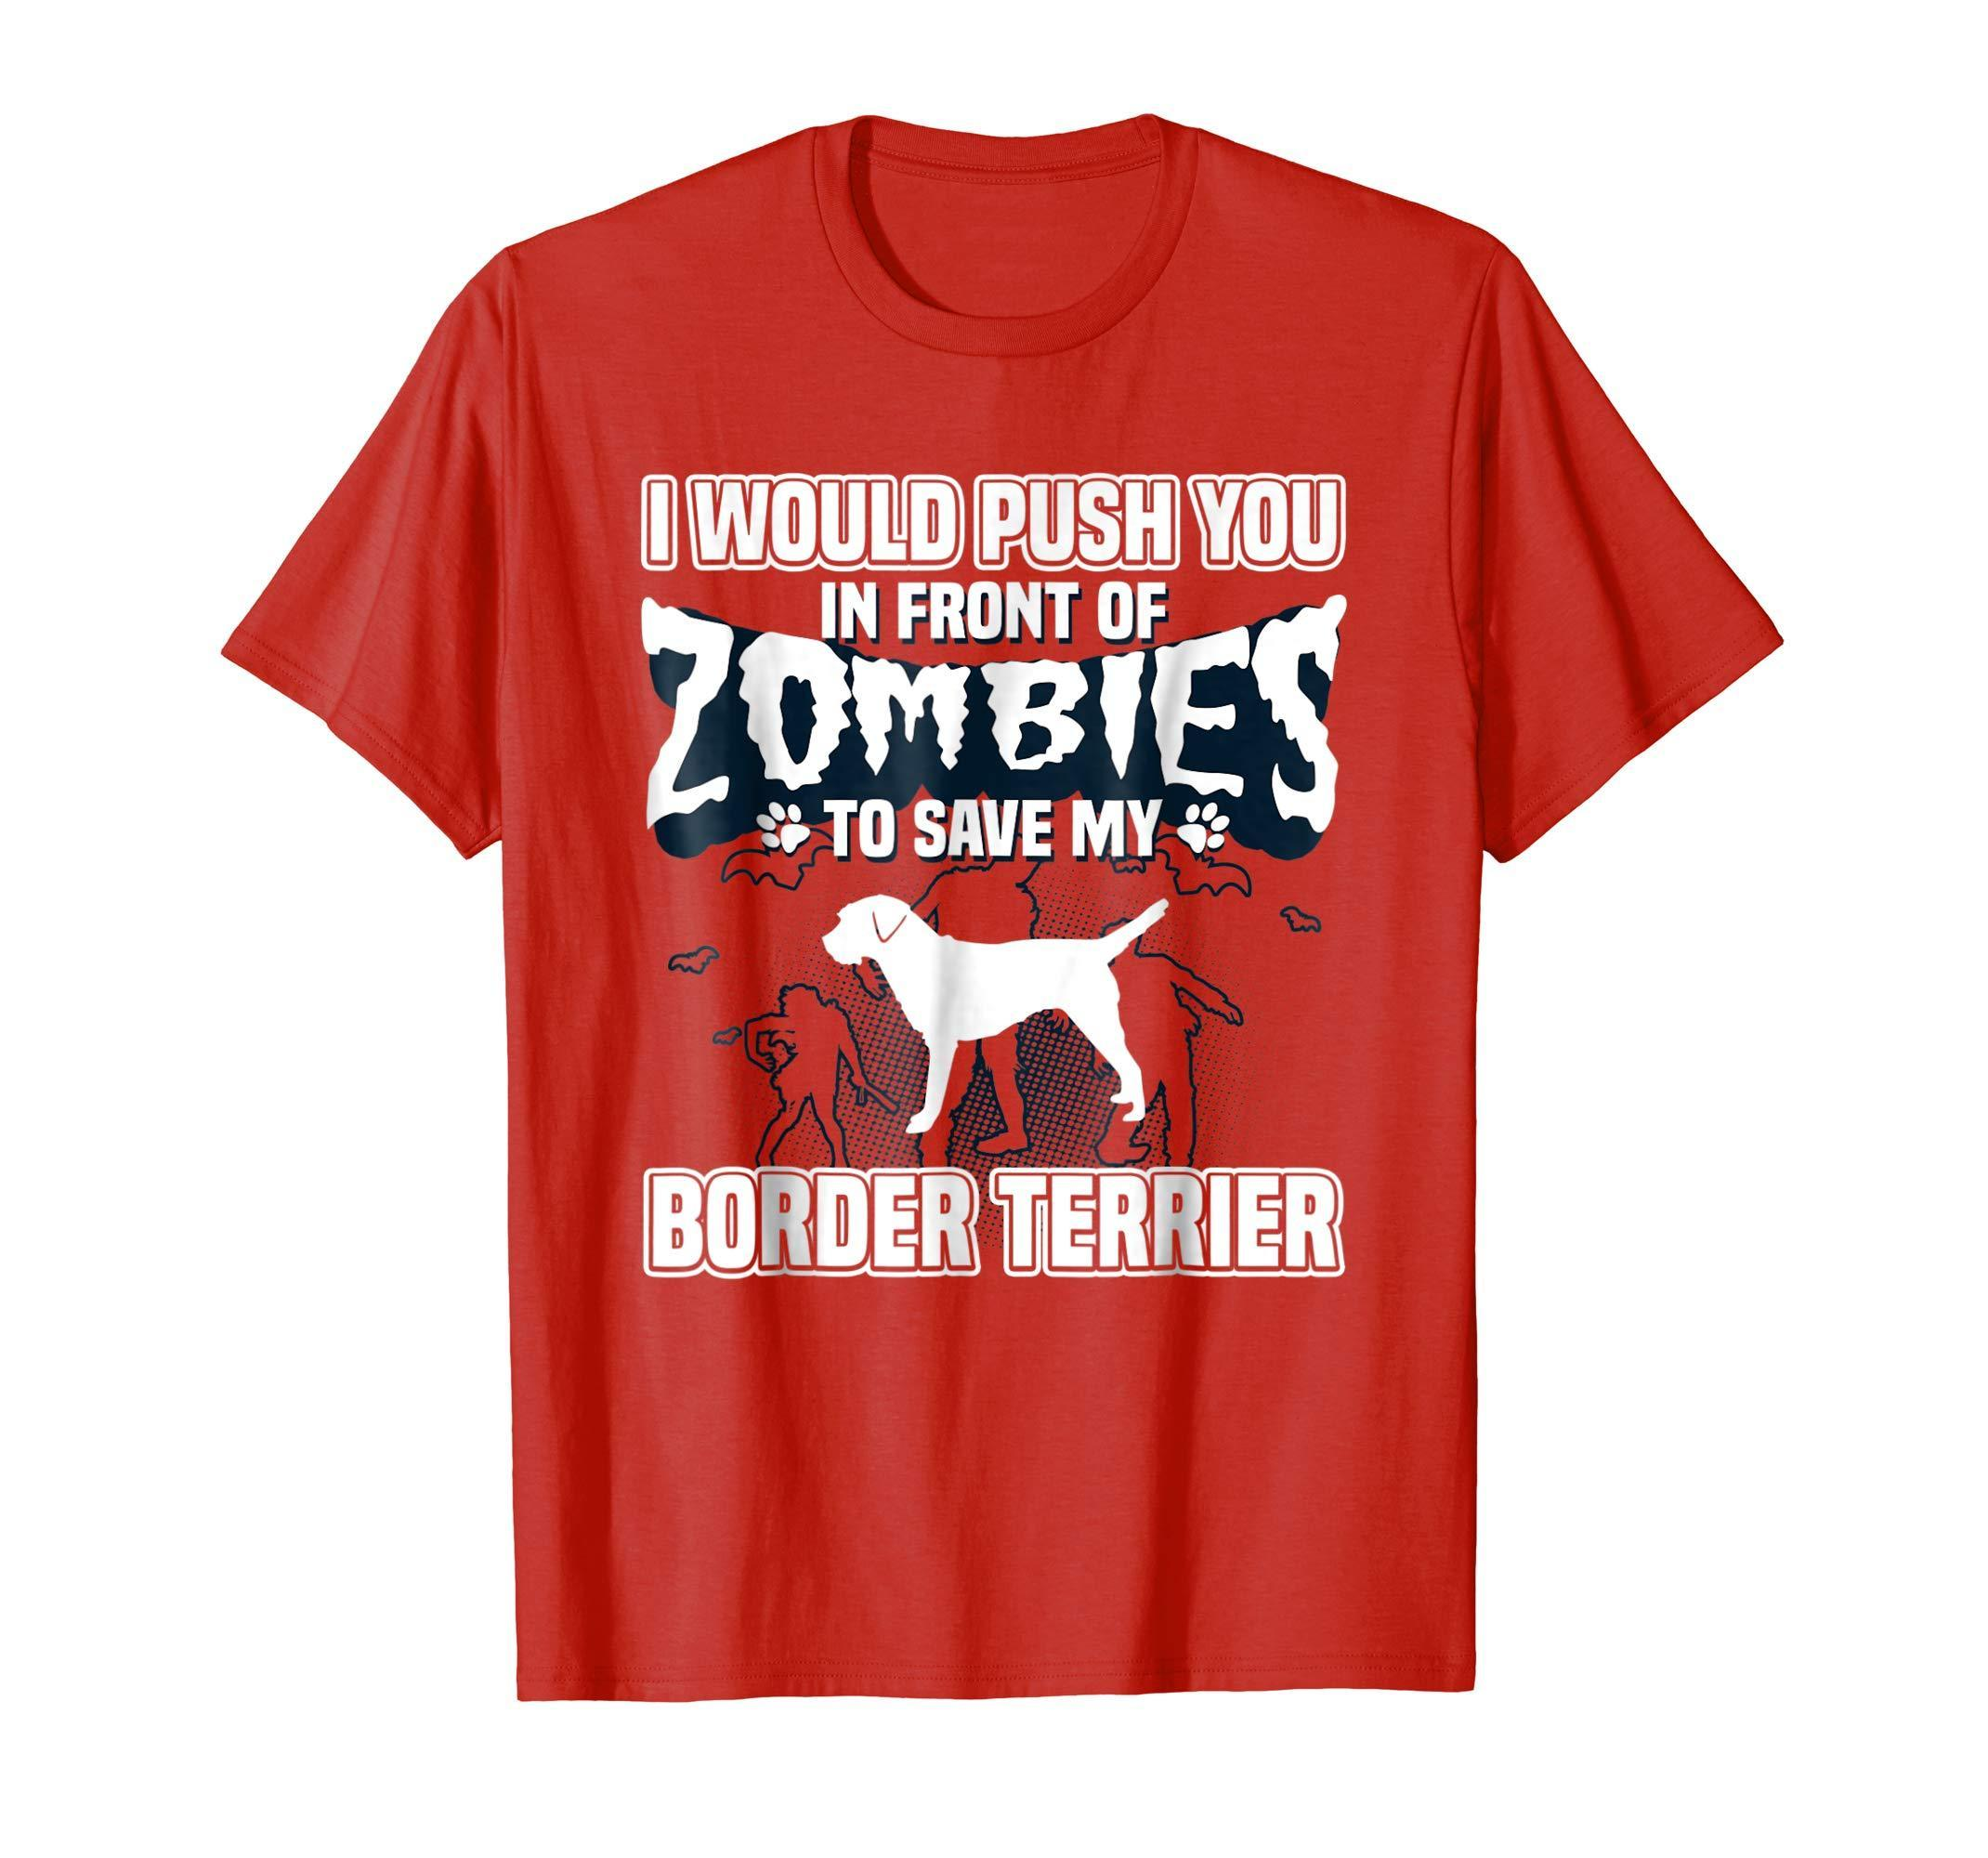 Find Border Terrier Halloween Gift For Dog Lovers Shirts